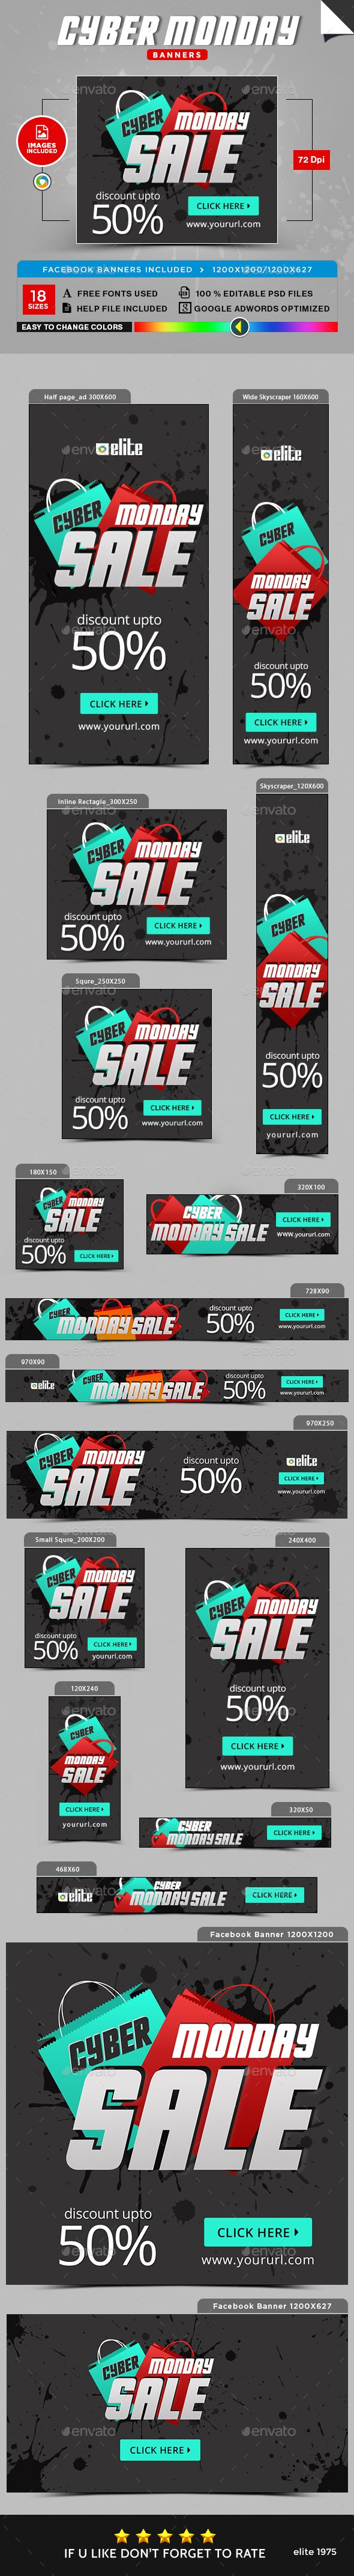 Cyber Monday Banners - Image Included - Template PSD